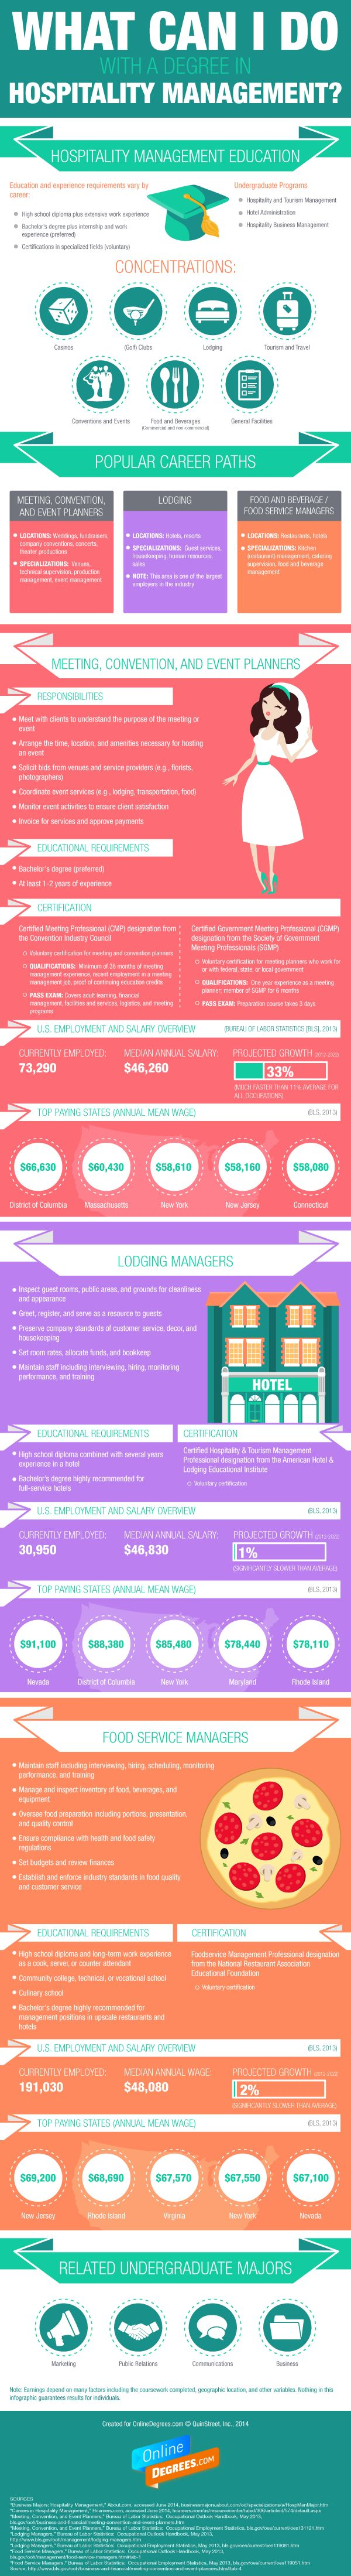 What Can I Do With A Degree In Hospitality Management?